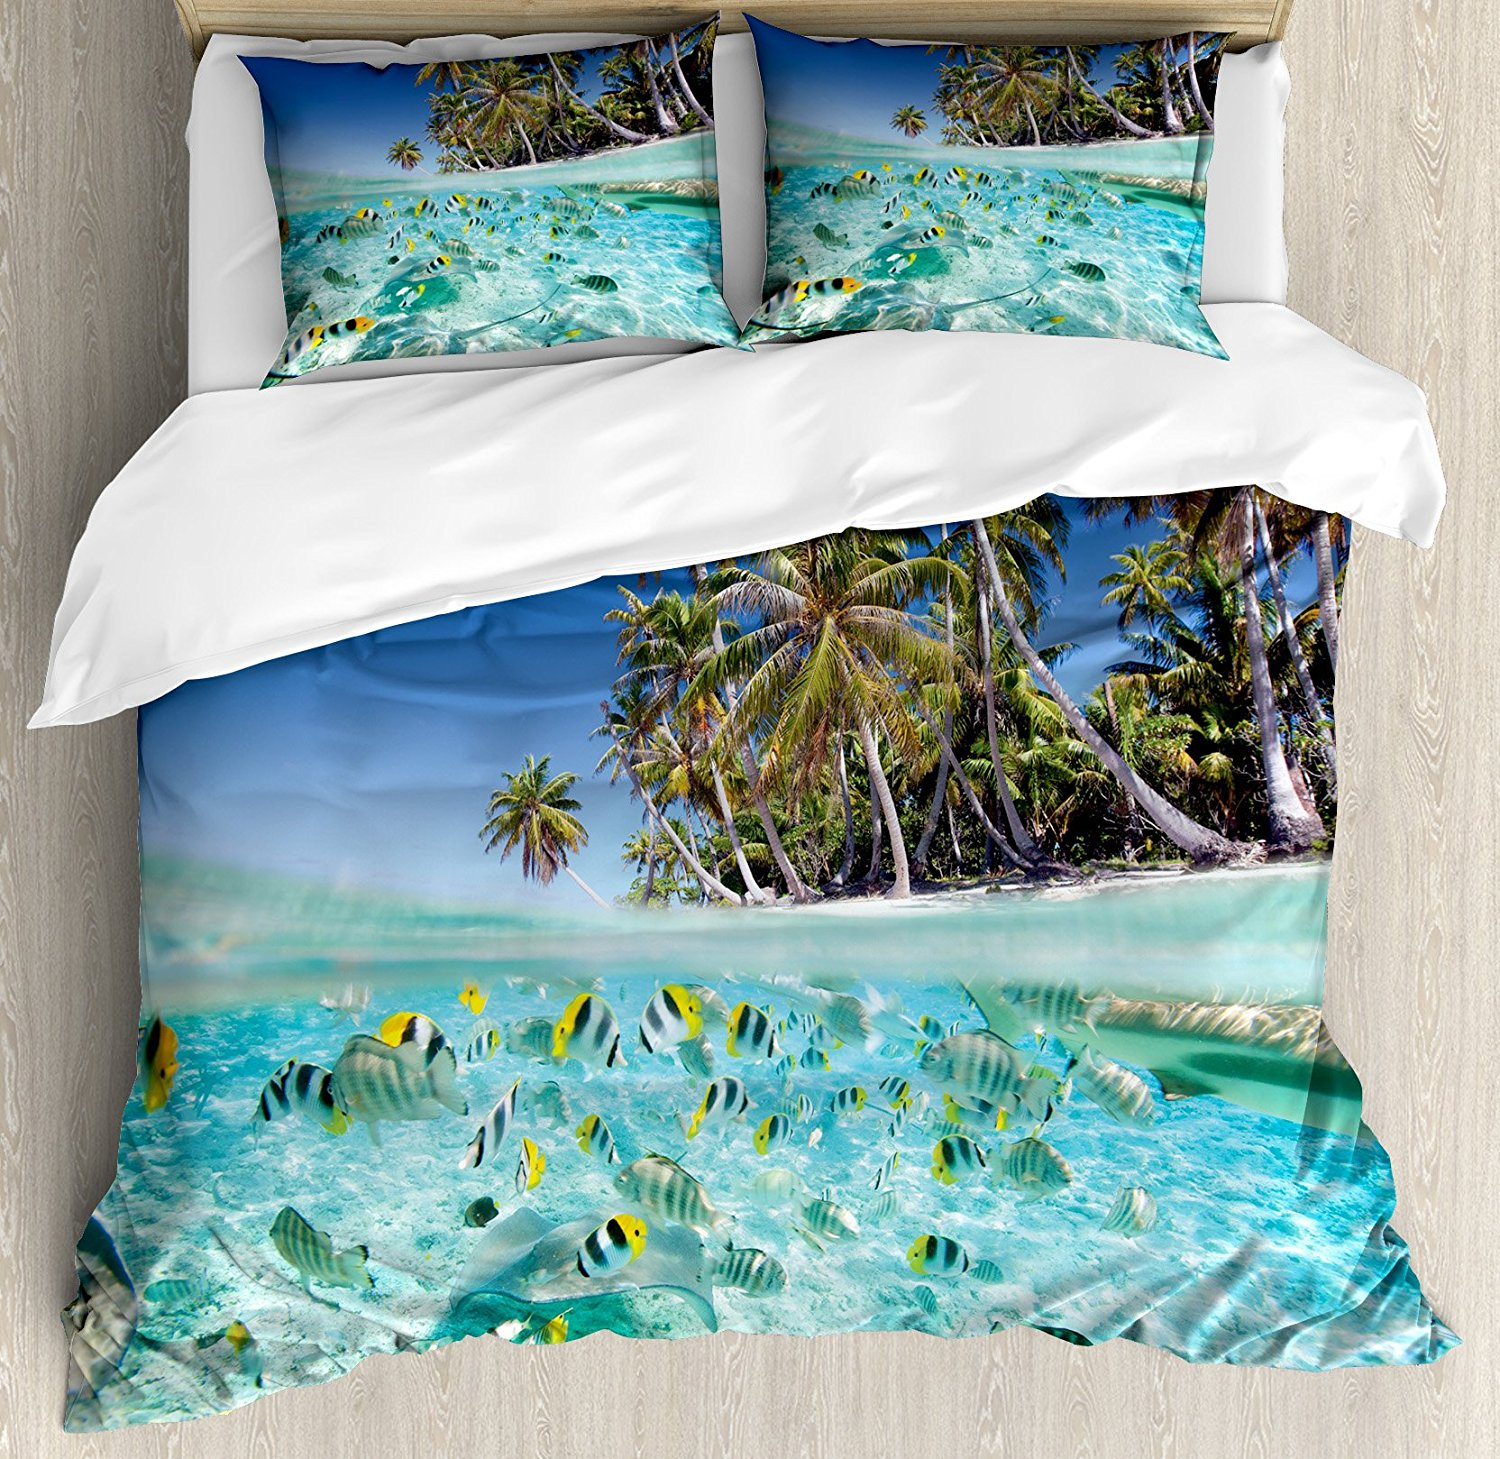 Tropical Duvet Cover Set Exotic Island Above and Underwater Picture Scenic Polynesian Untouched Shoreline Decor Bedding Set